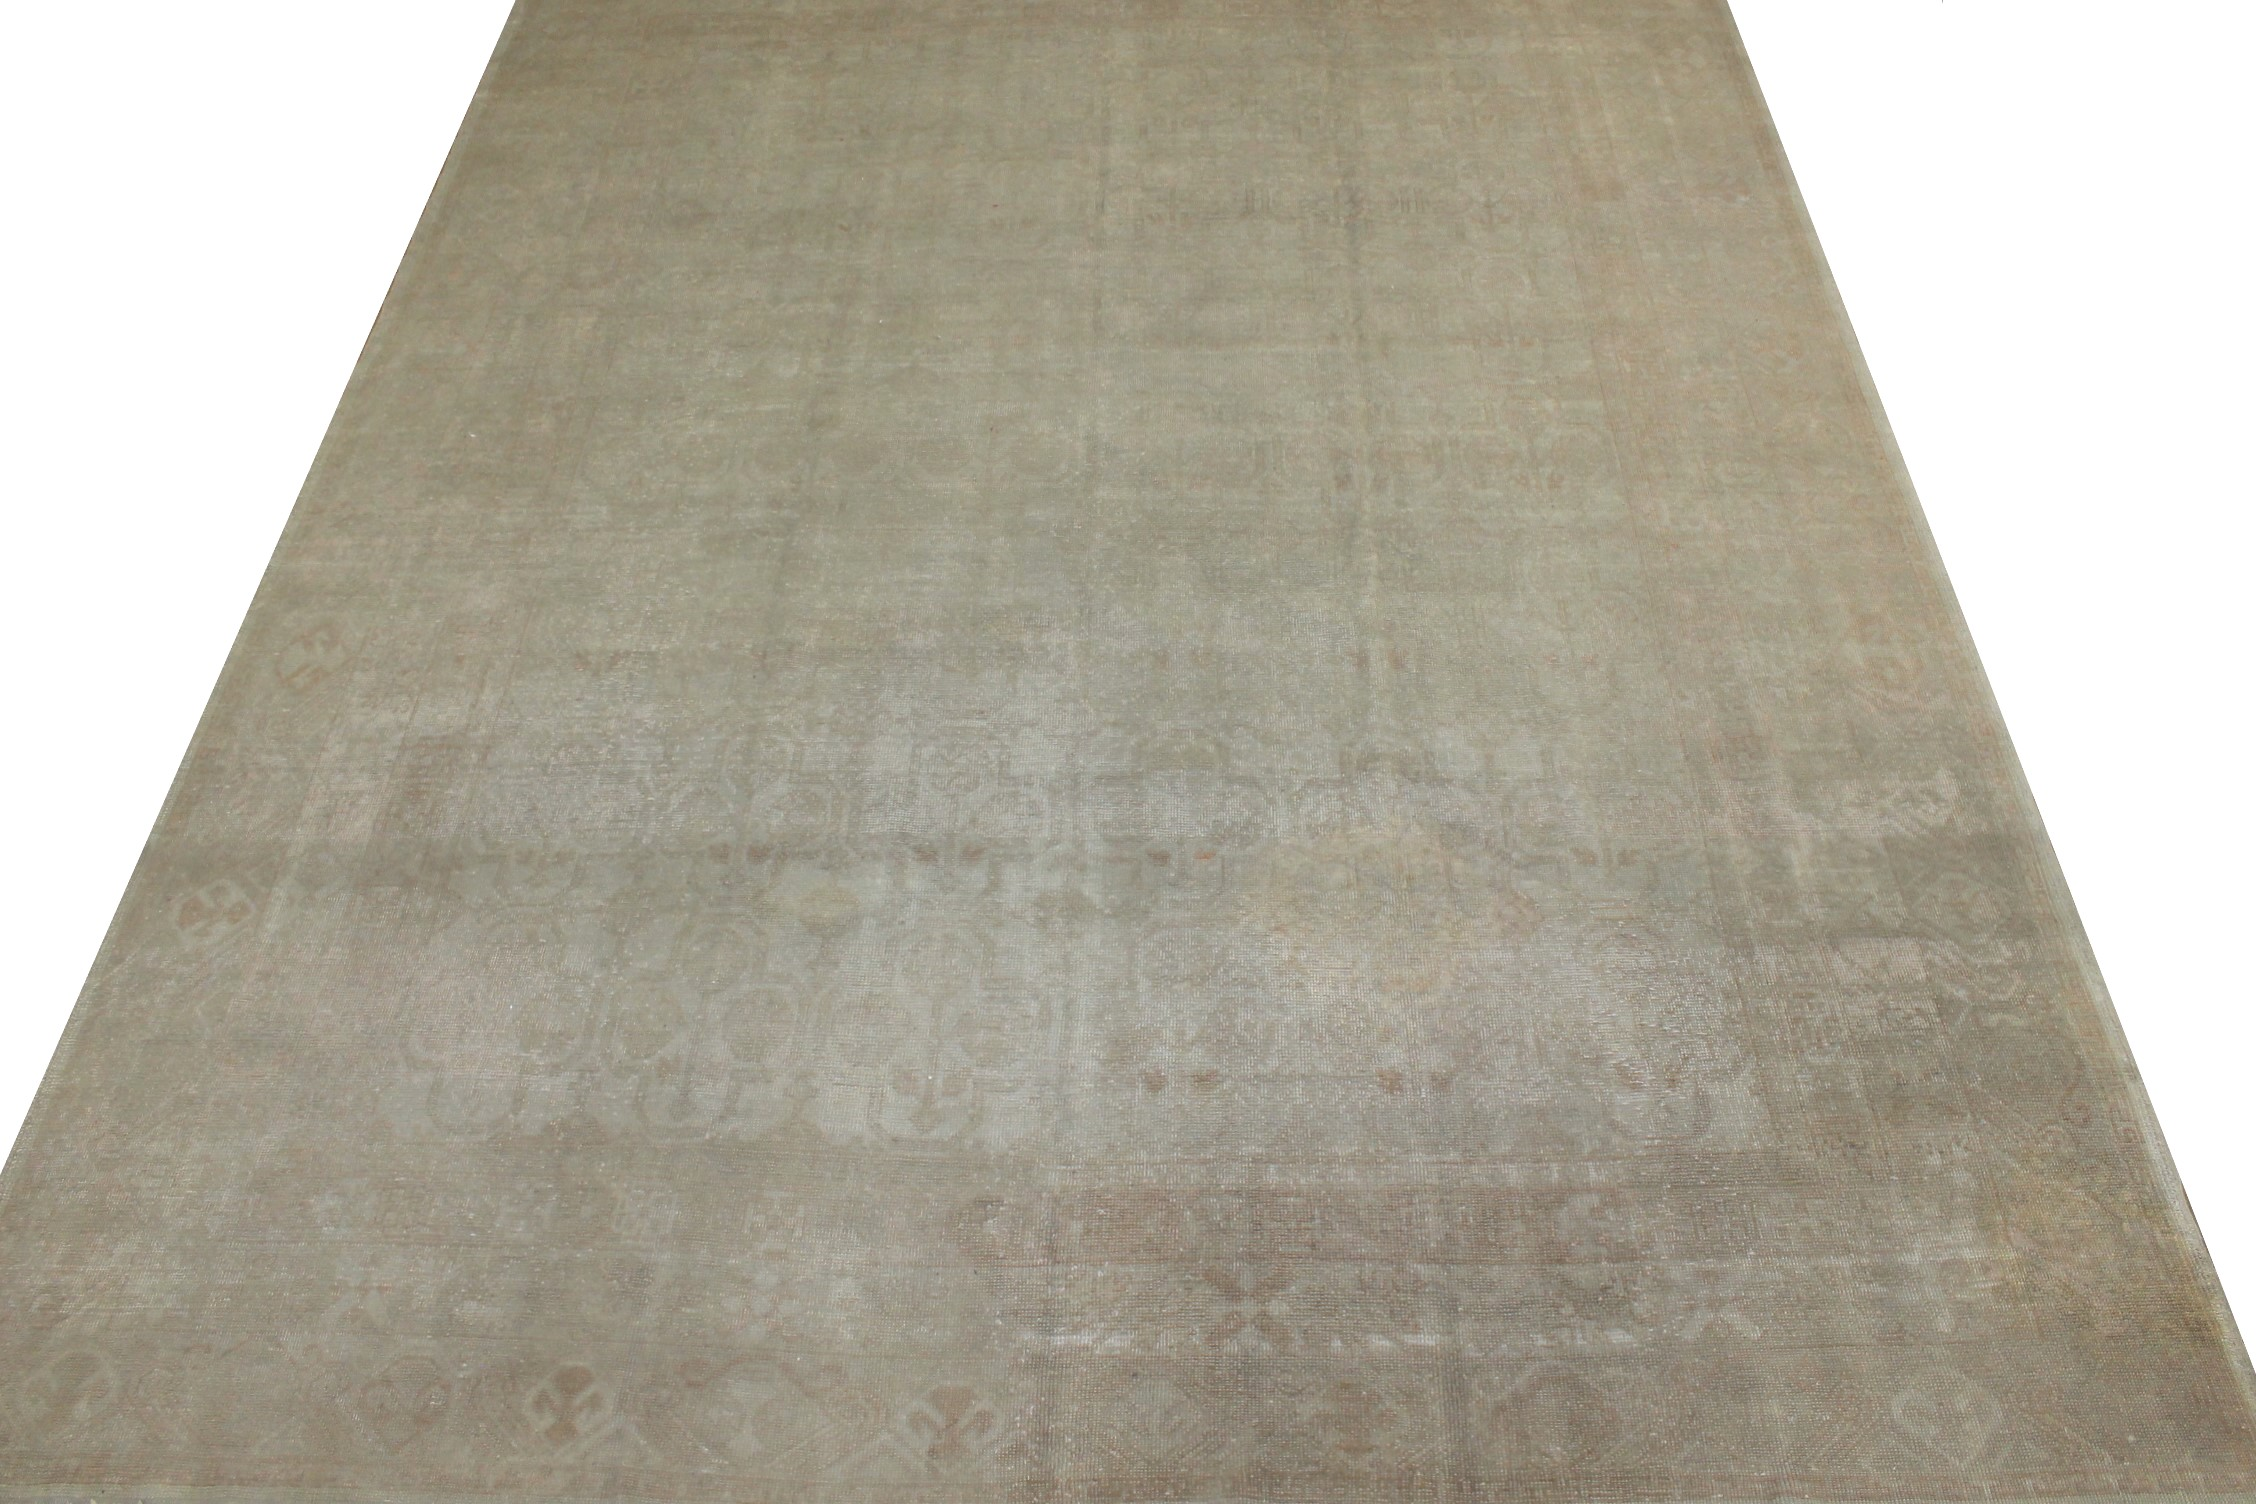 OVERSIZE Oushak Hand Knotted Wool Area Rug - MR16773